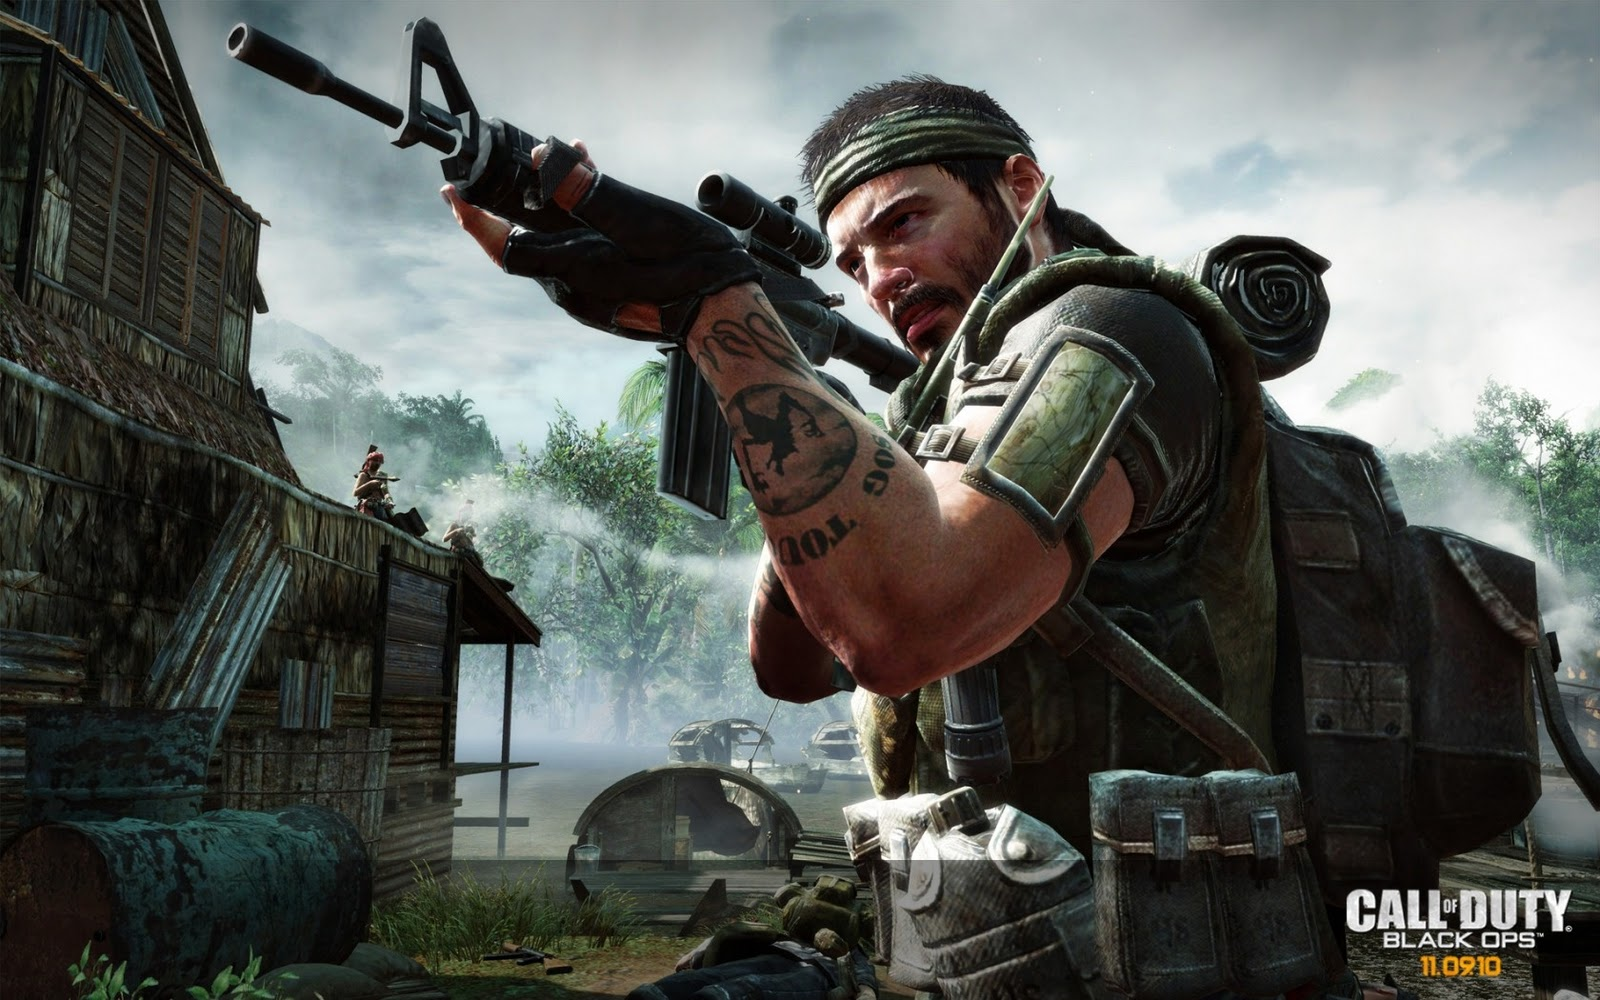 http://1.bp.blogspot.com/-vxkpBeQjan0/TsfshjCN5rI/AAAAAAAAARE/GPj-tiBP47k/s1600/Call-of-Duty-Game-desktop-photo-Hd-Wallpapers-8.jpg